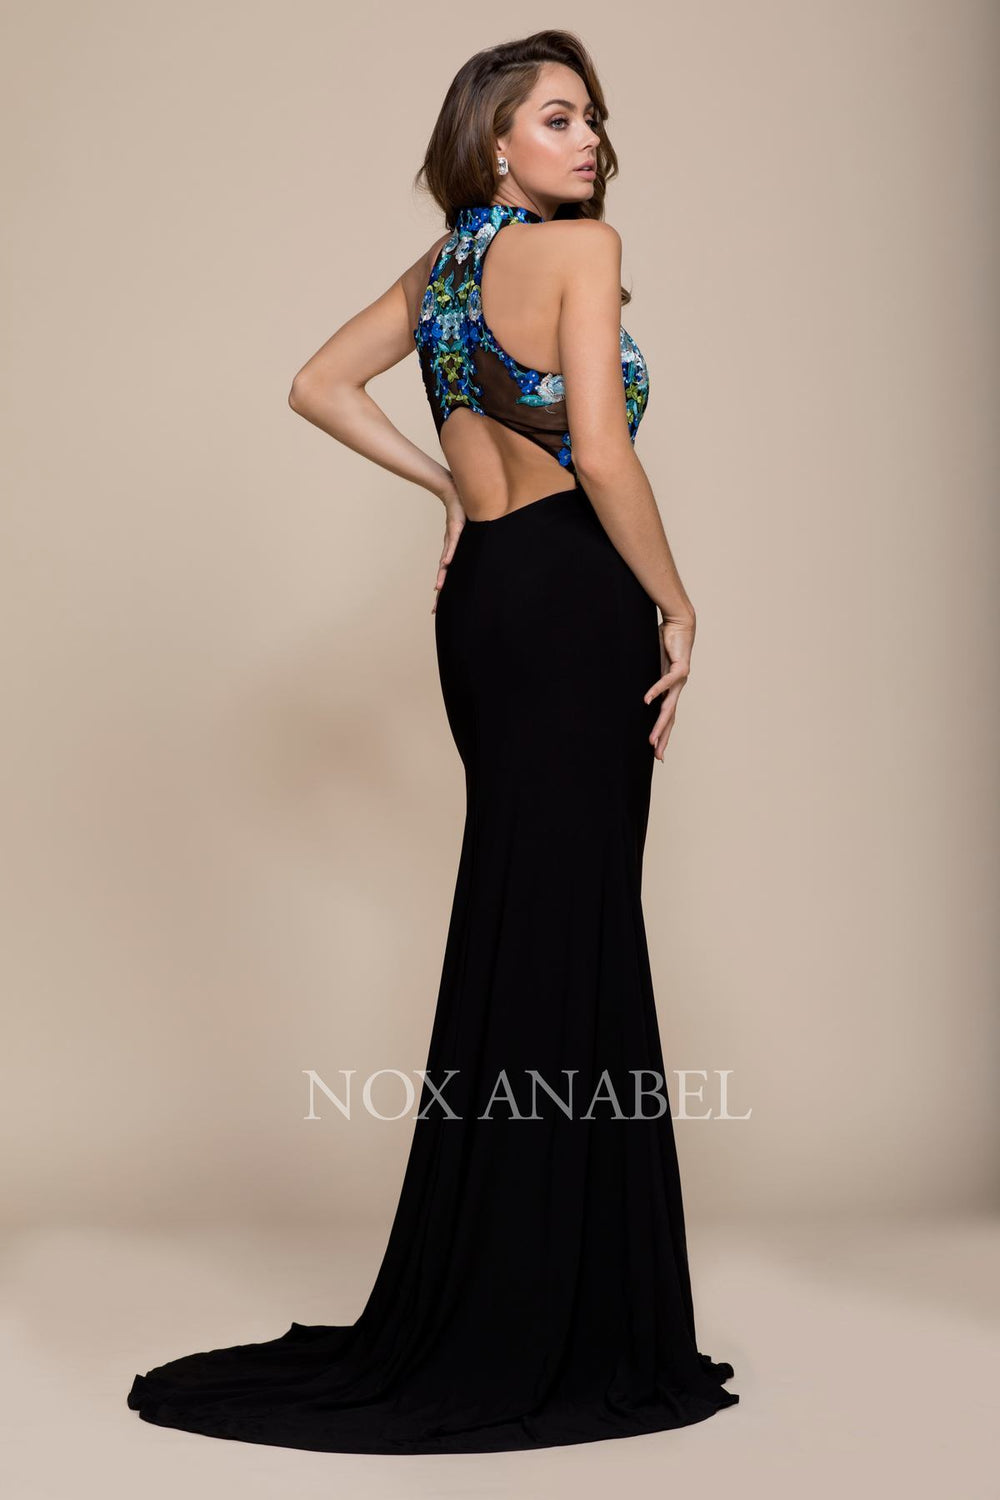 EMBROIDERED SLEEVELESS HALTER TOP PROM EVENING DRESS 8375 BY NARIANNA